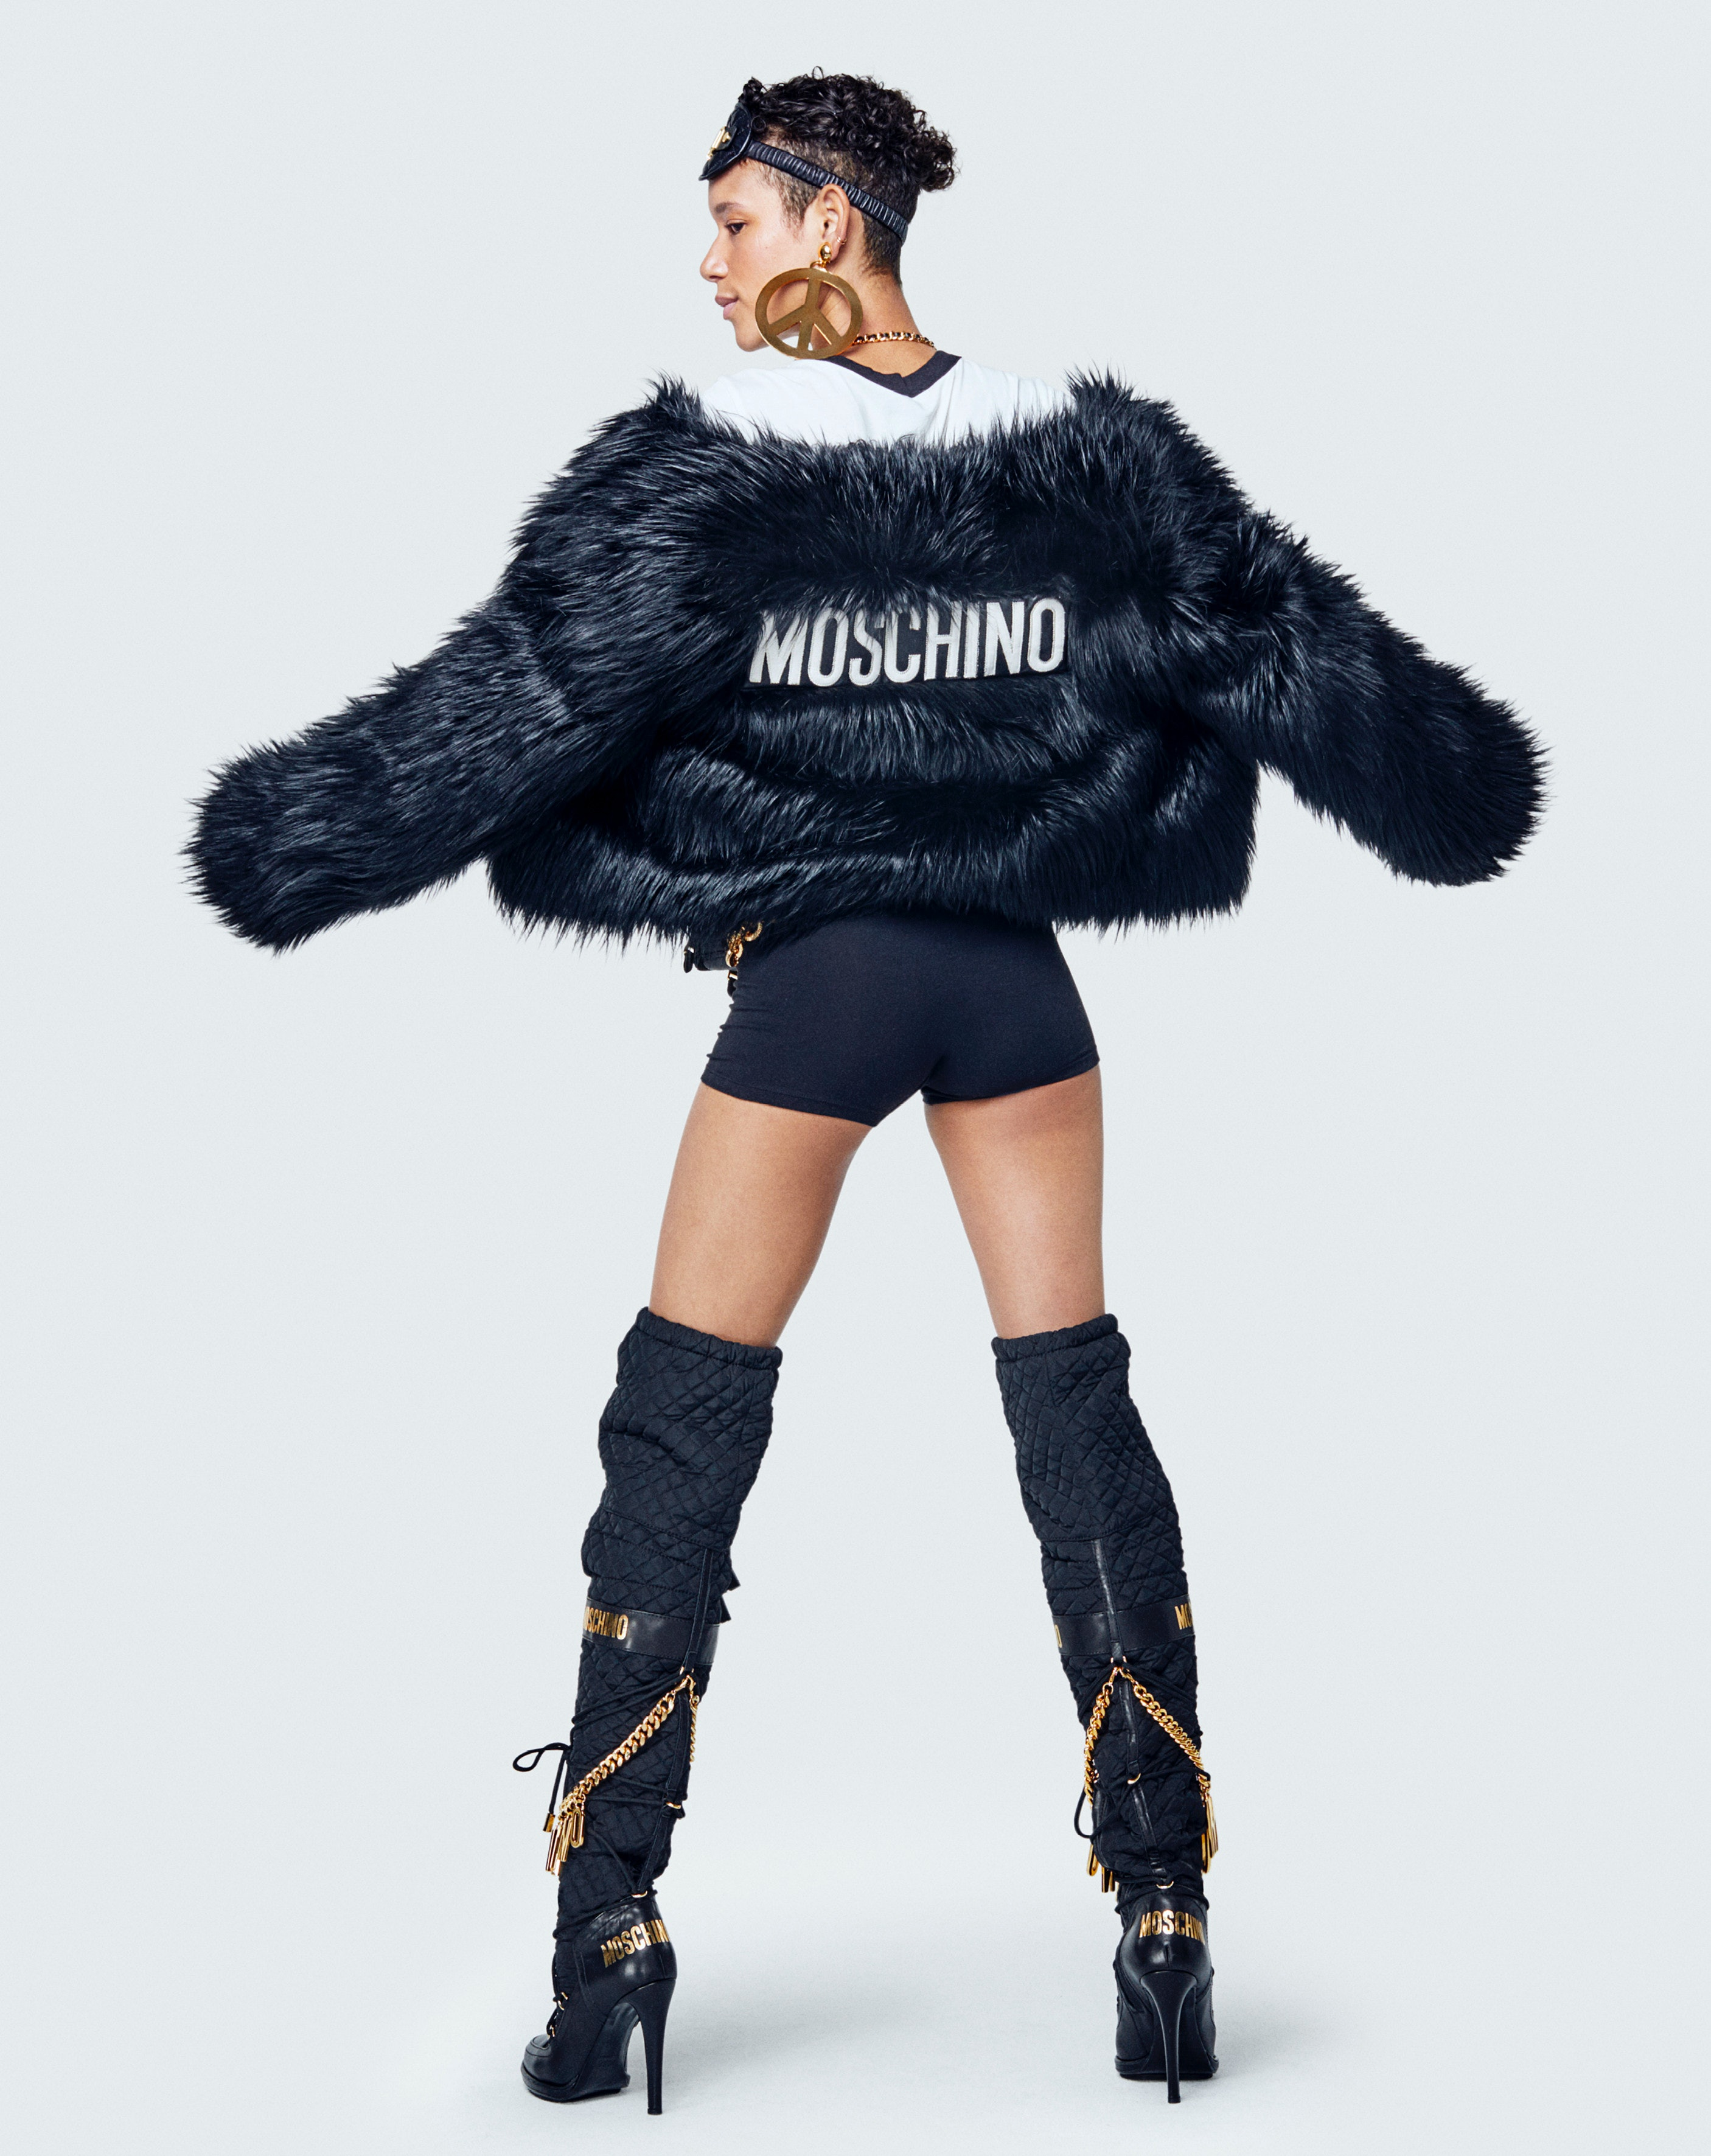 d433d9bc89334 The H M x Moschino Collection Is So Good   You Can Snag Items For Under  30